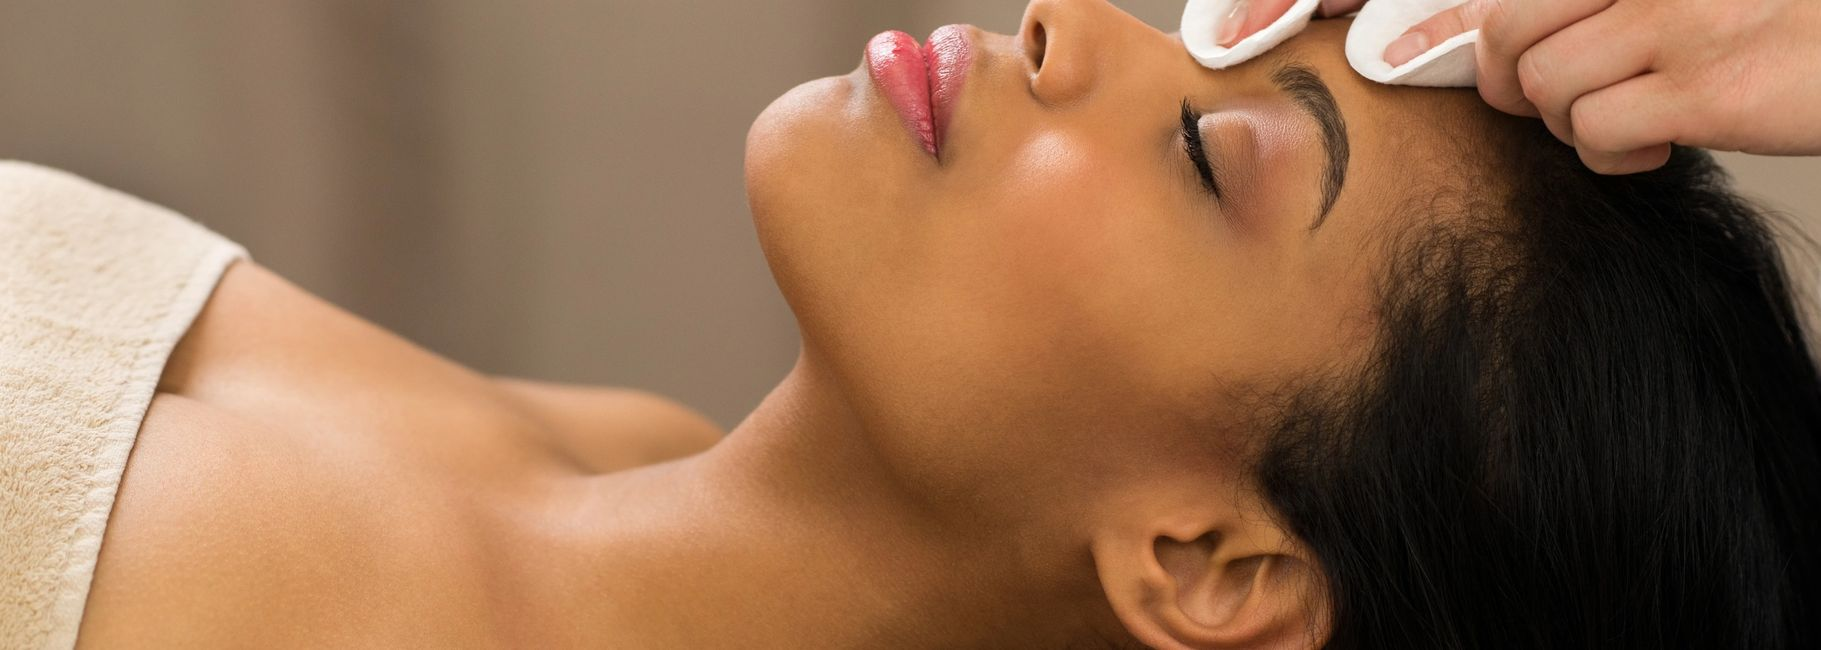 Facial little rock, facials near me, custom facial little rock, best facial little rock arkansas